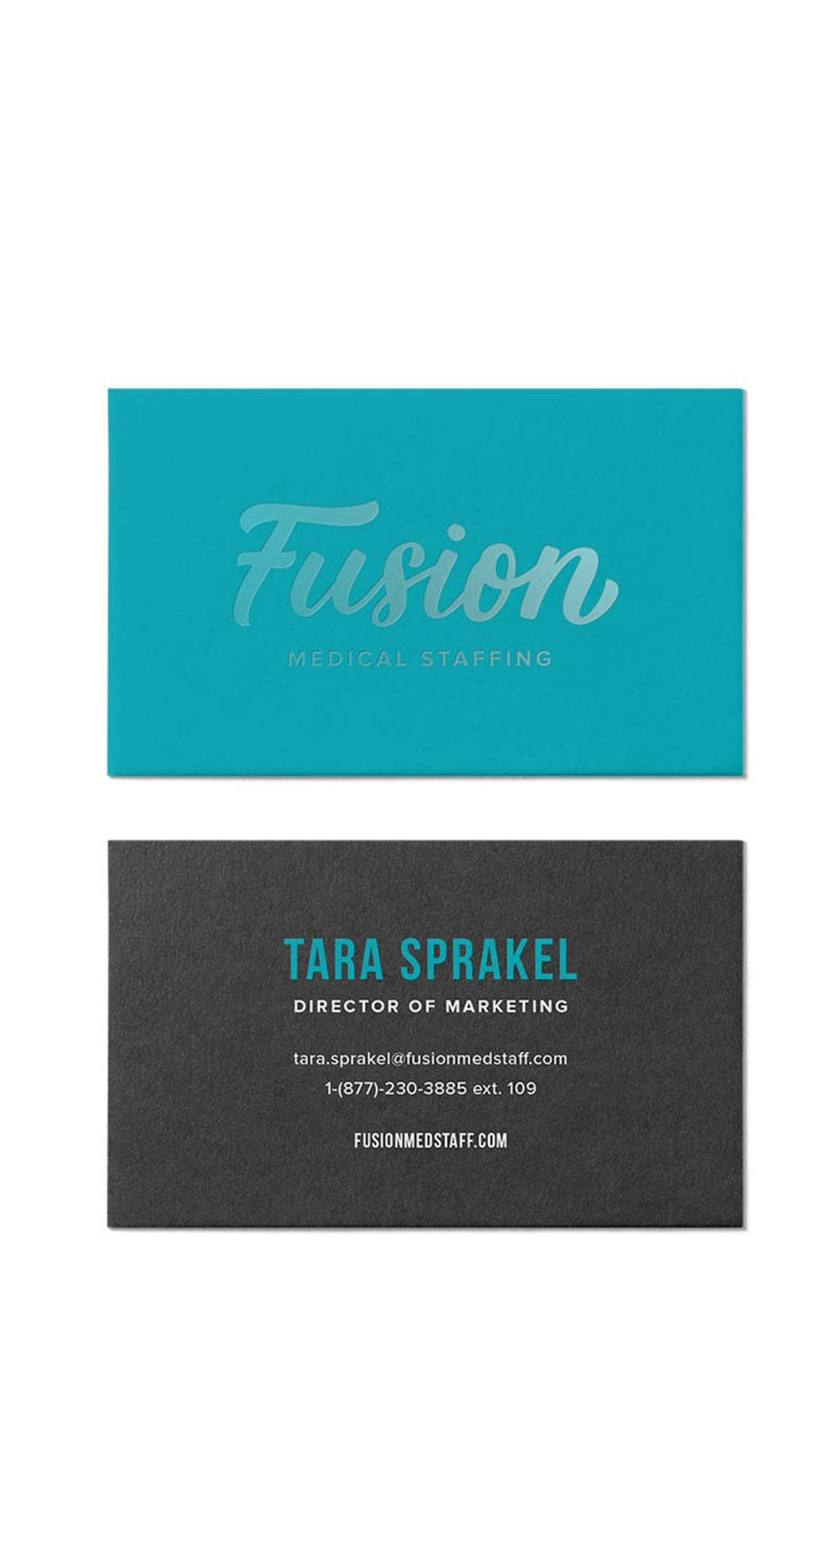 Fruitful Design Strategy Omaha Nebraska Fusion Business Cards.jpg